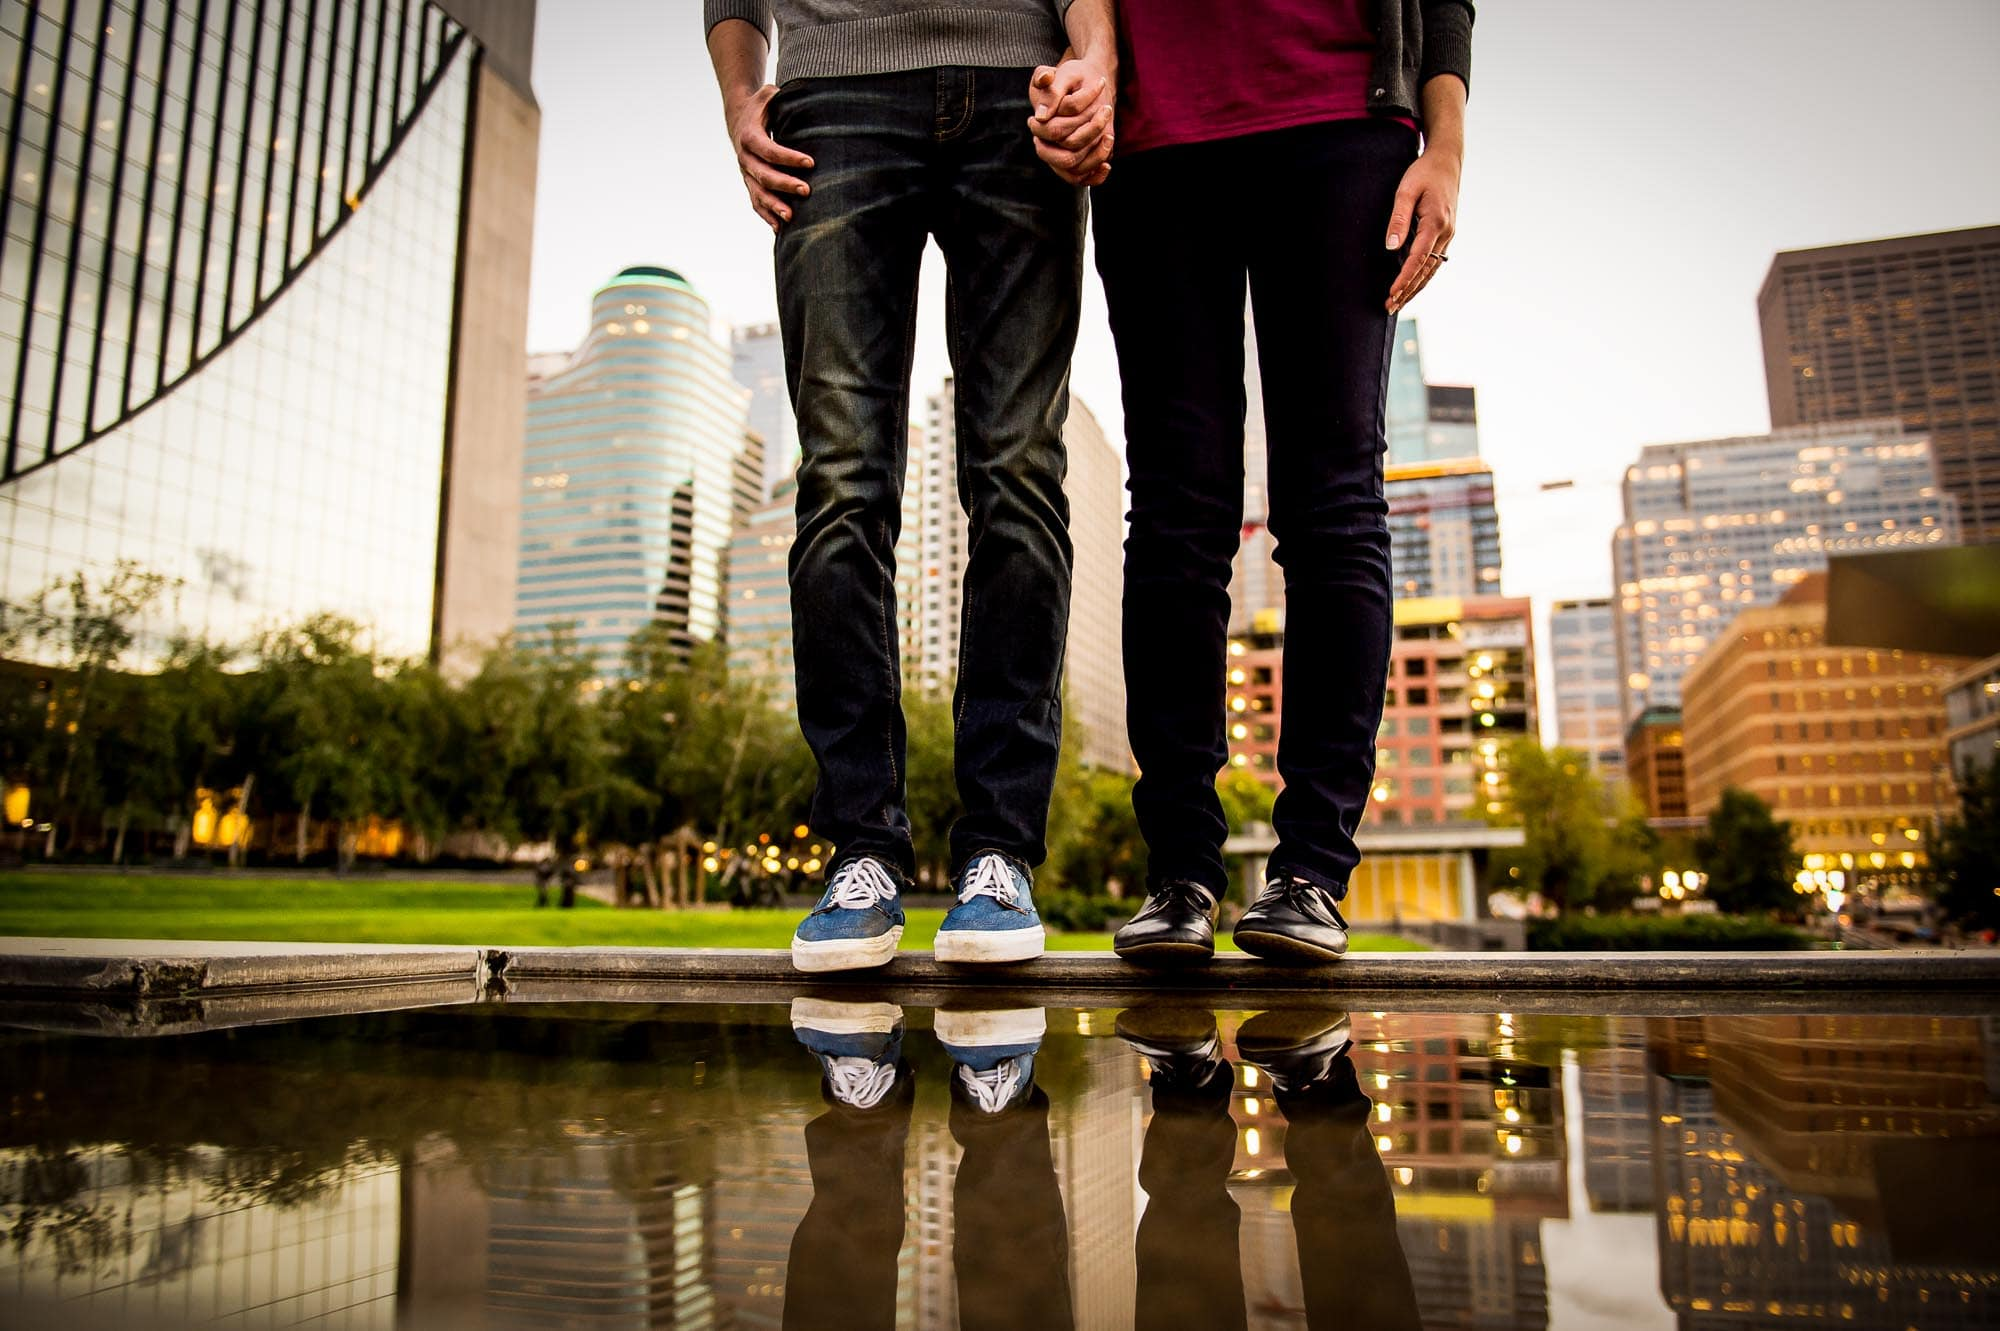 artistic photo of engaged couples reflection over the water fountain in downtown Minneapolis